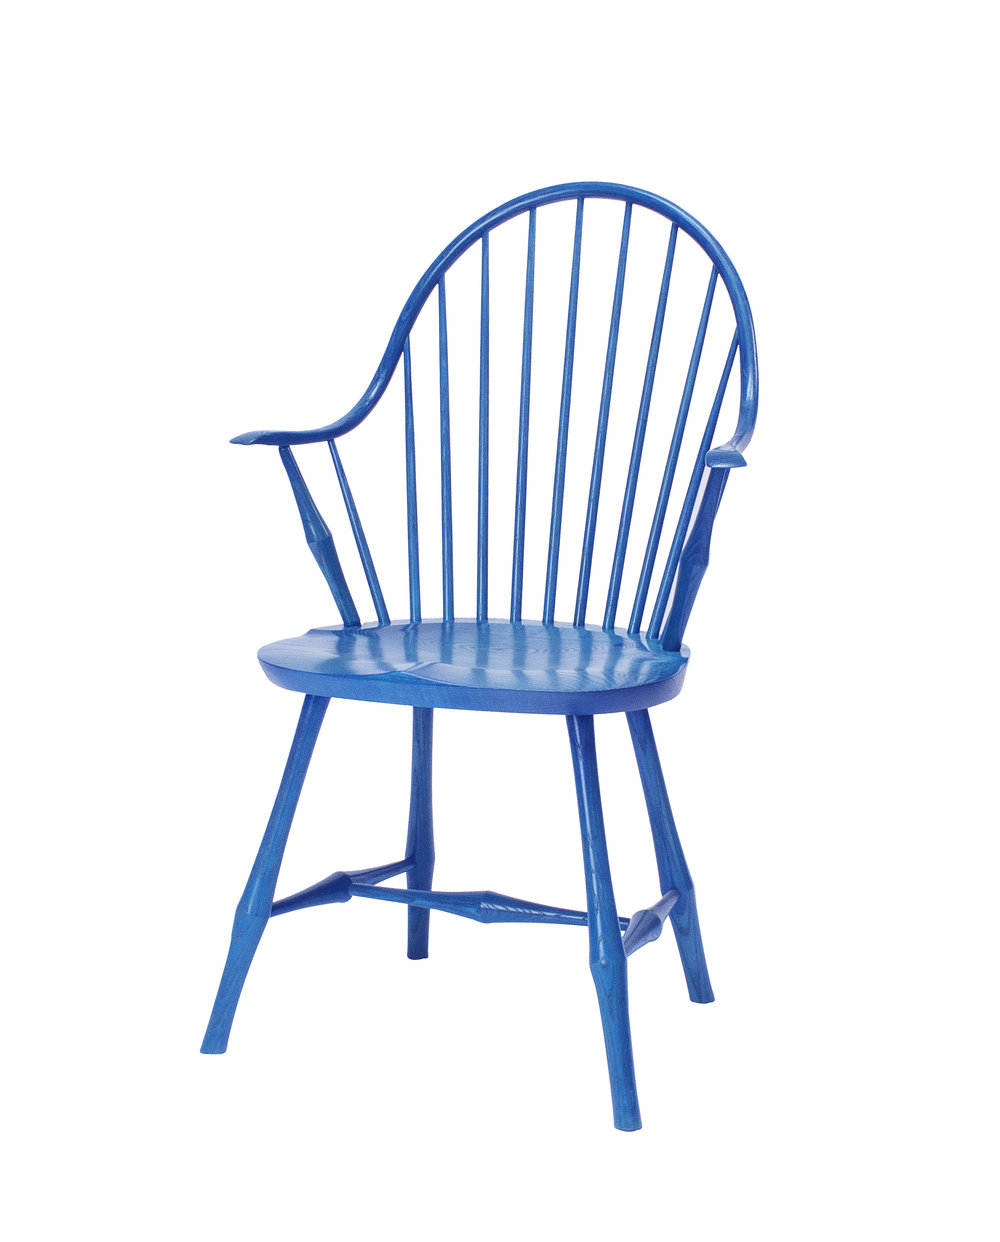 Wayland_Elbow_Chair_Delft_Ash_Quarter.jpg